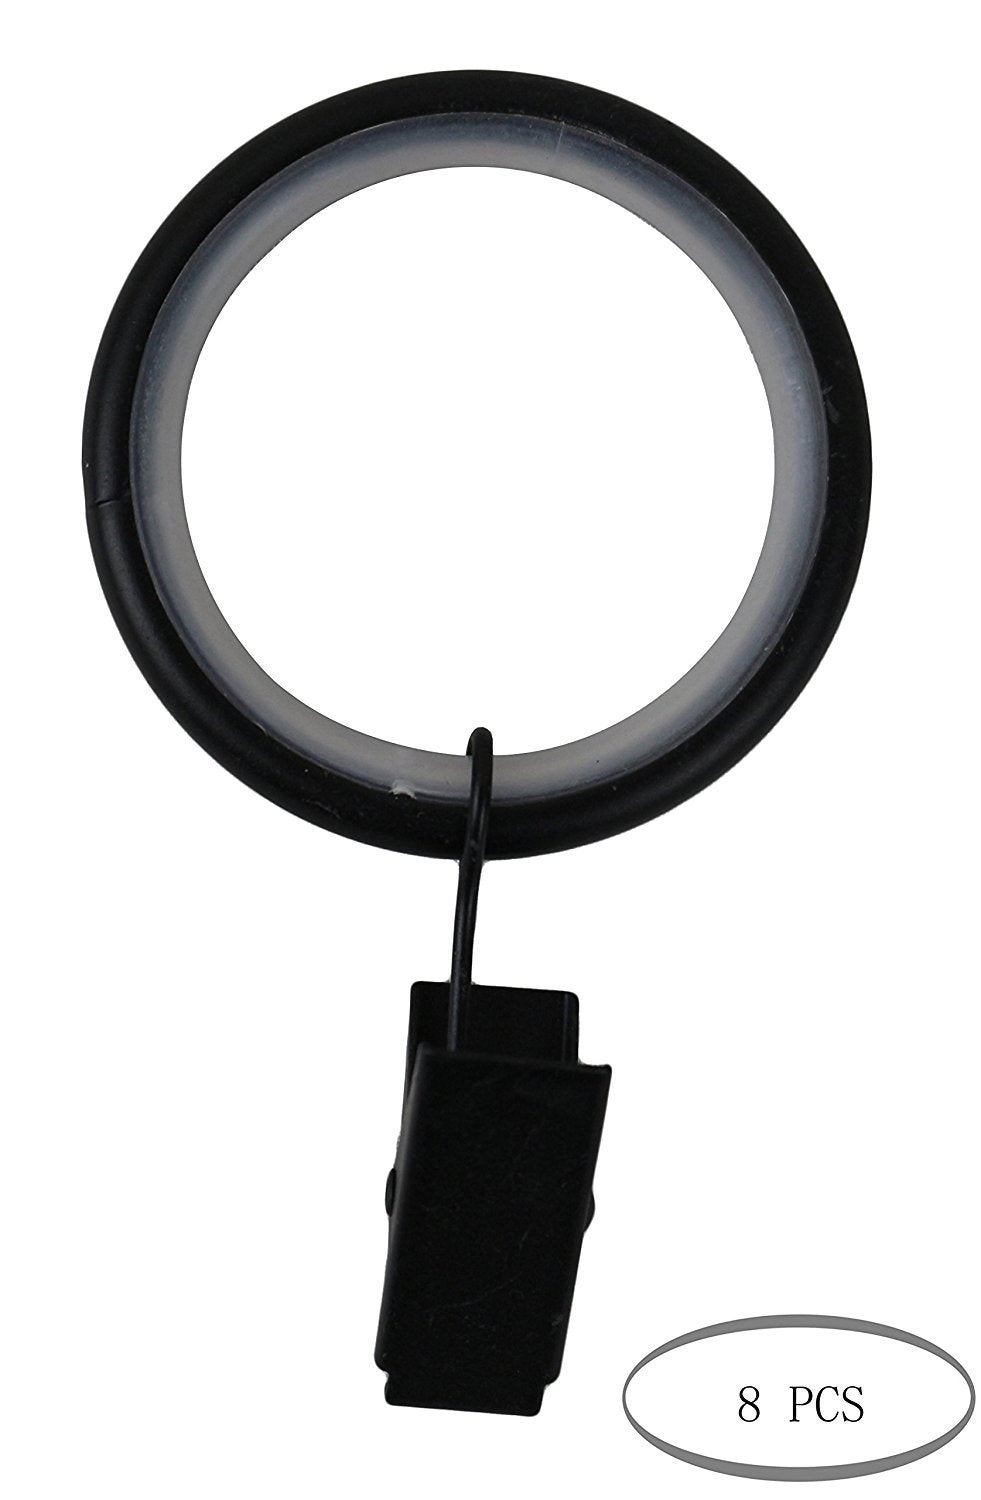 Curtain Drapery Rings with Clips, 1.5-inch Inner Diameter, Nylon Insert Quiet Smooth